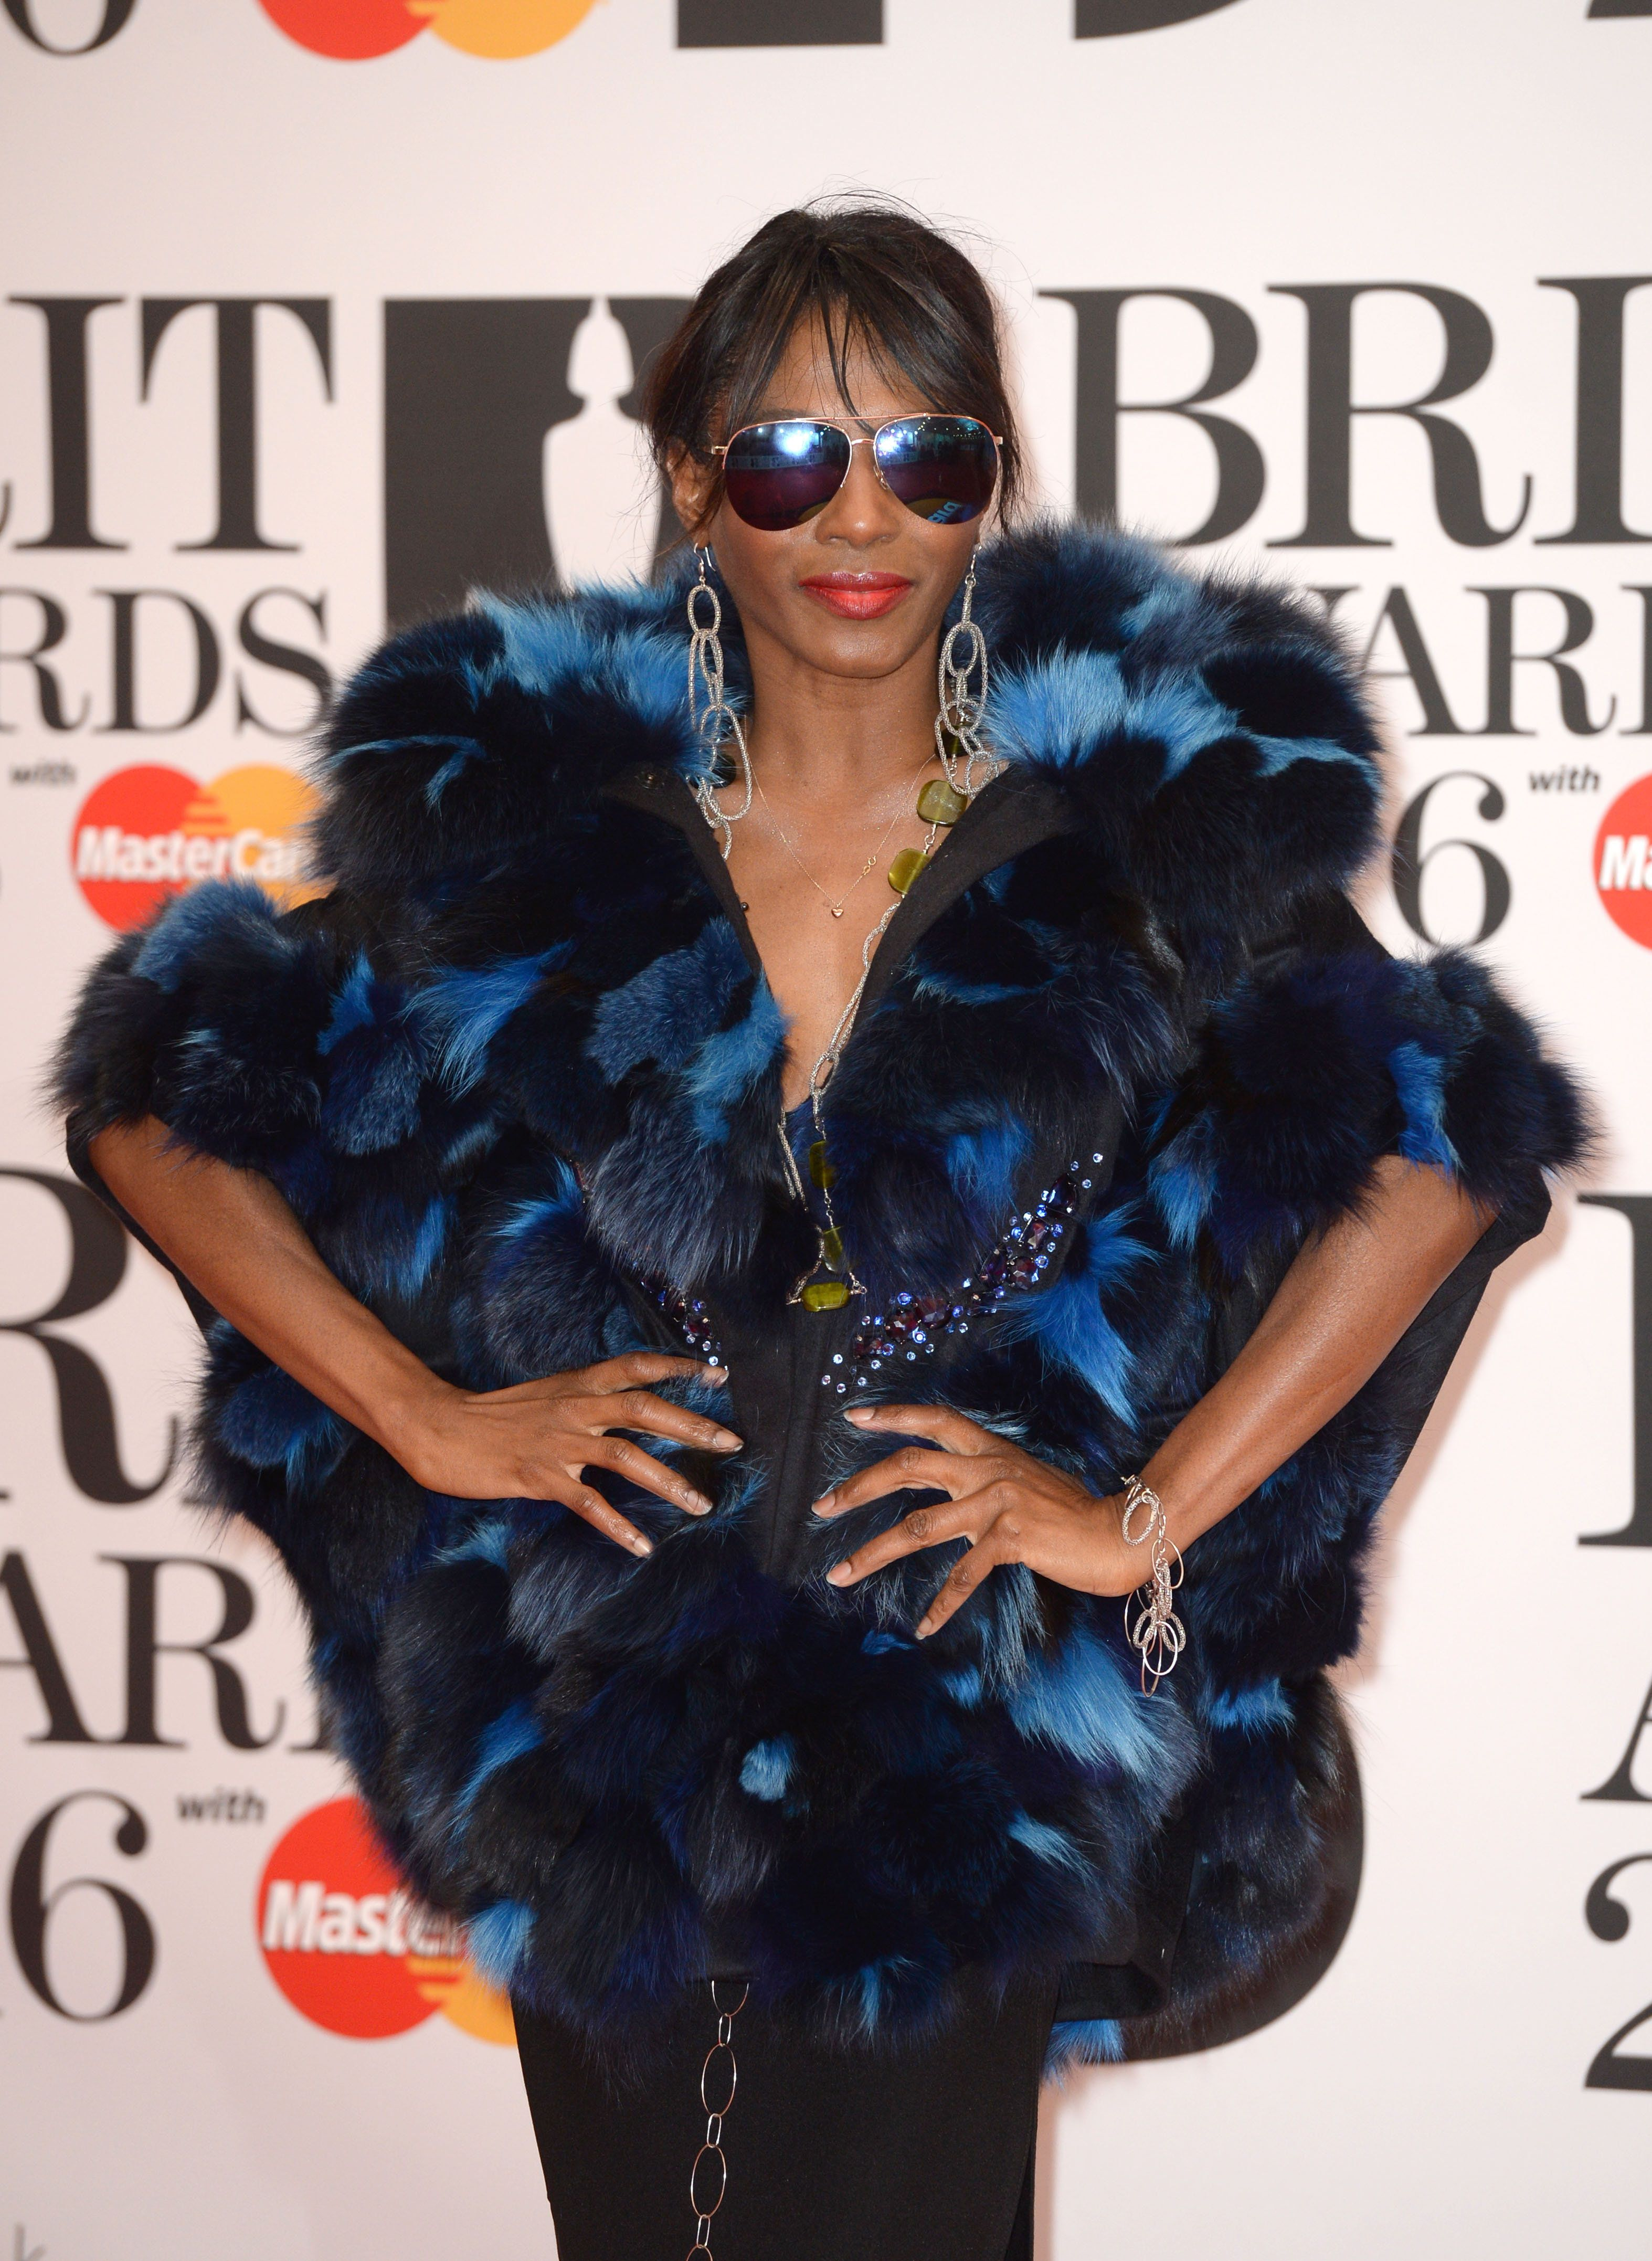 Sinitta Could Enter The 'Celebrity Big Brother' House After All, As One Housemate 'Quits' At Last